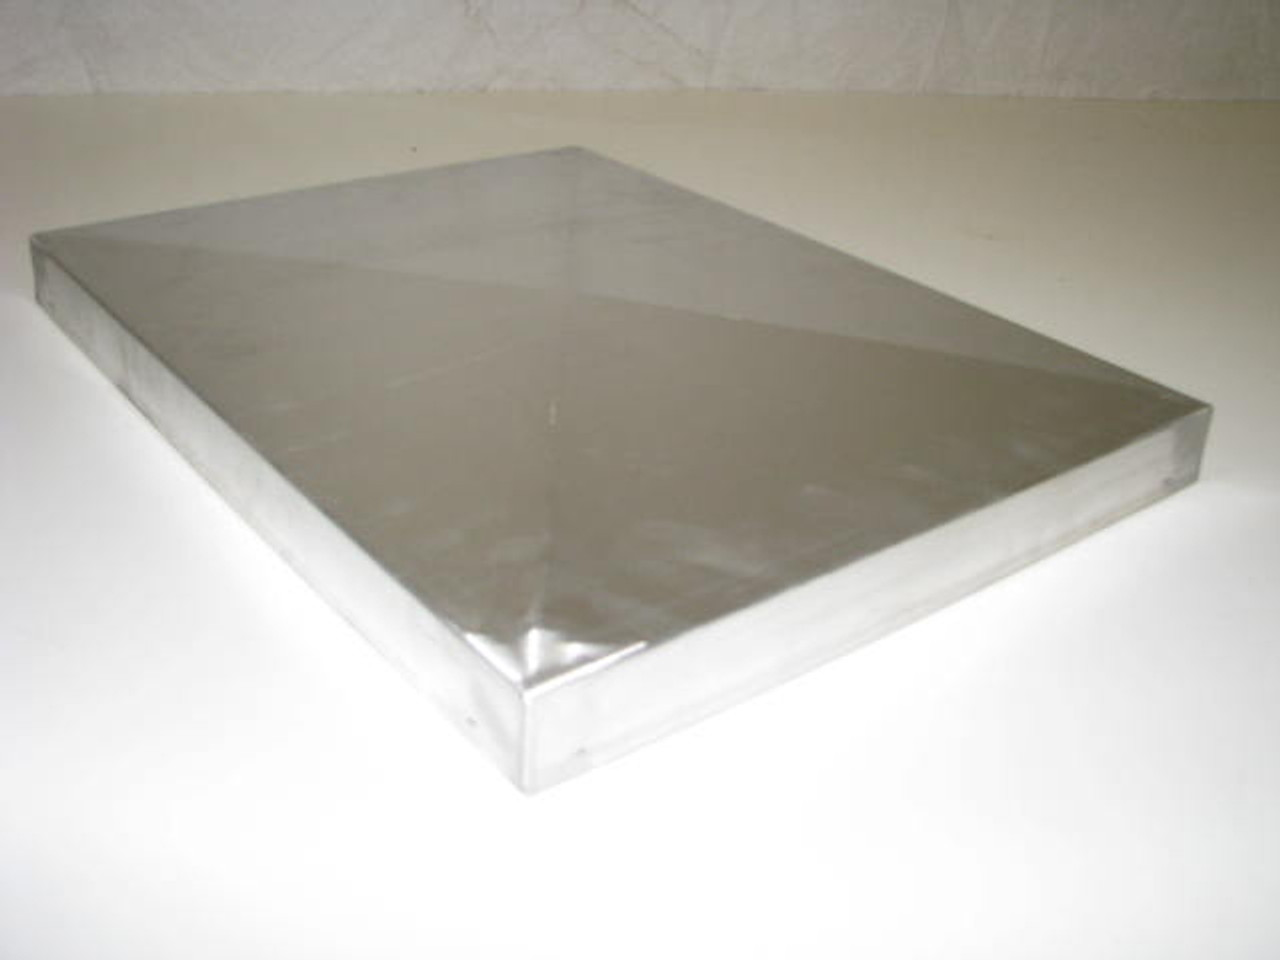 "Spartan Aluminum Vent Cover - 12"" x 16"" (CBP010) ANGLED VIEW"